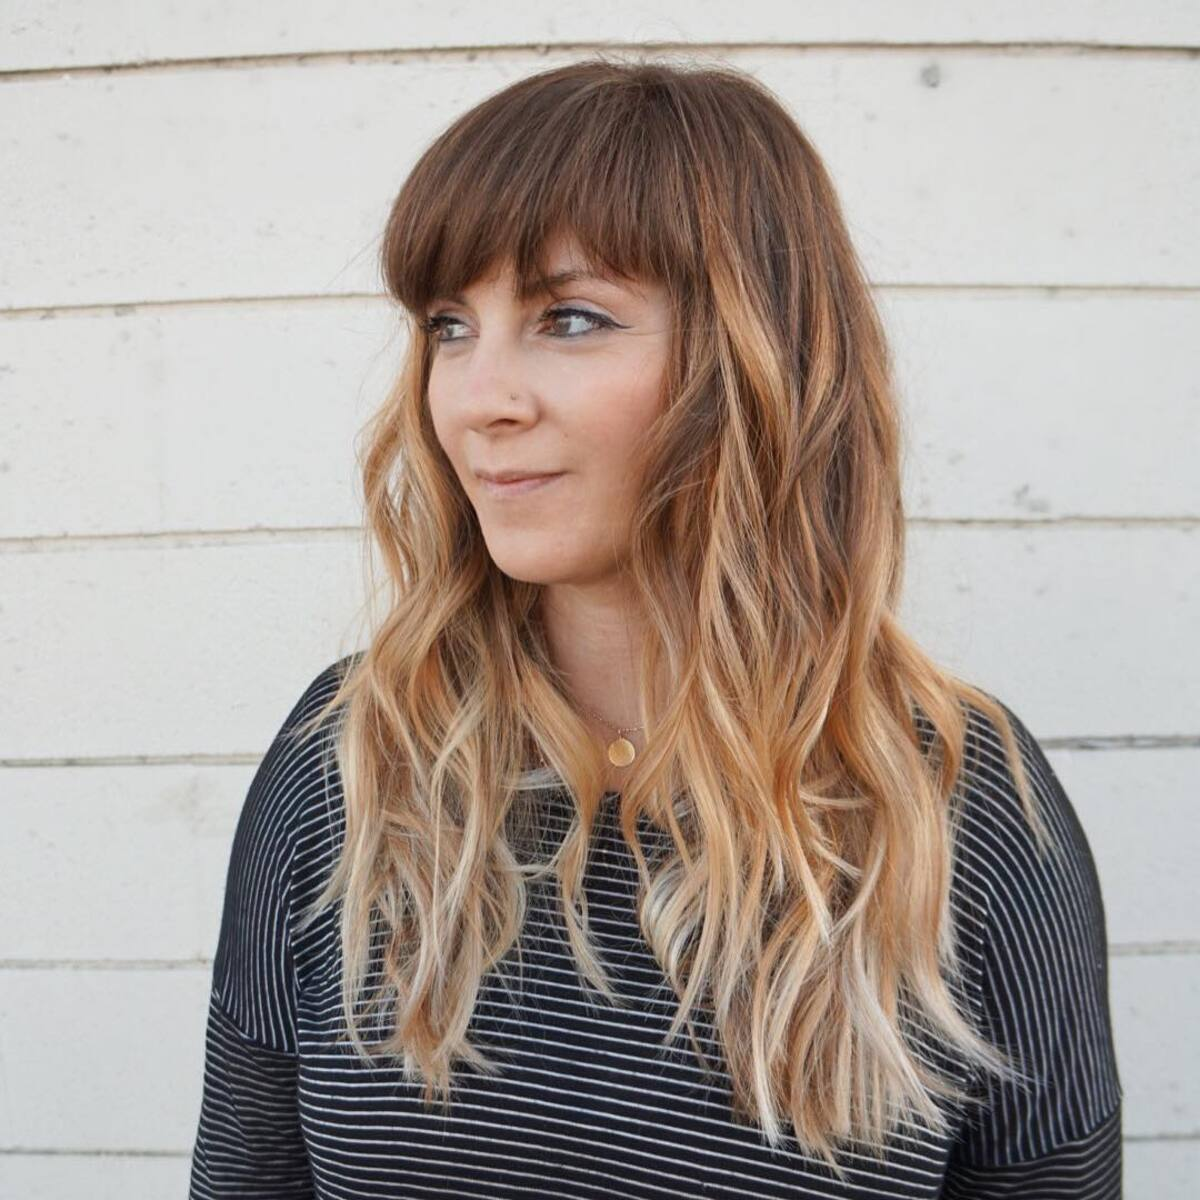 Caramel Brown to Blonde Ombre with Bangs